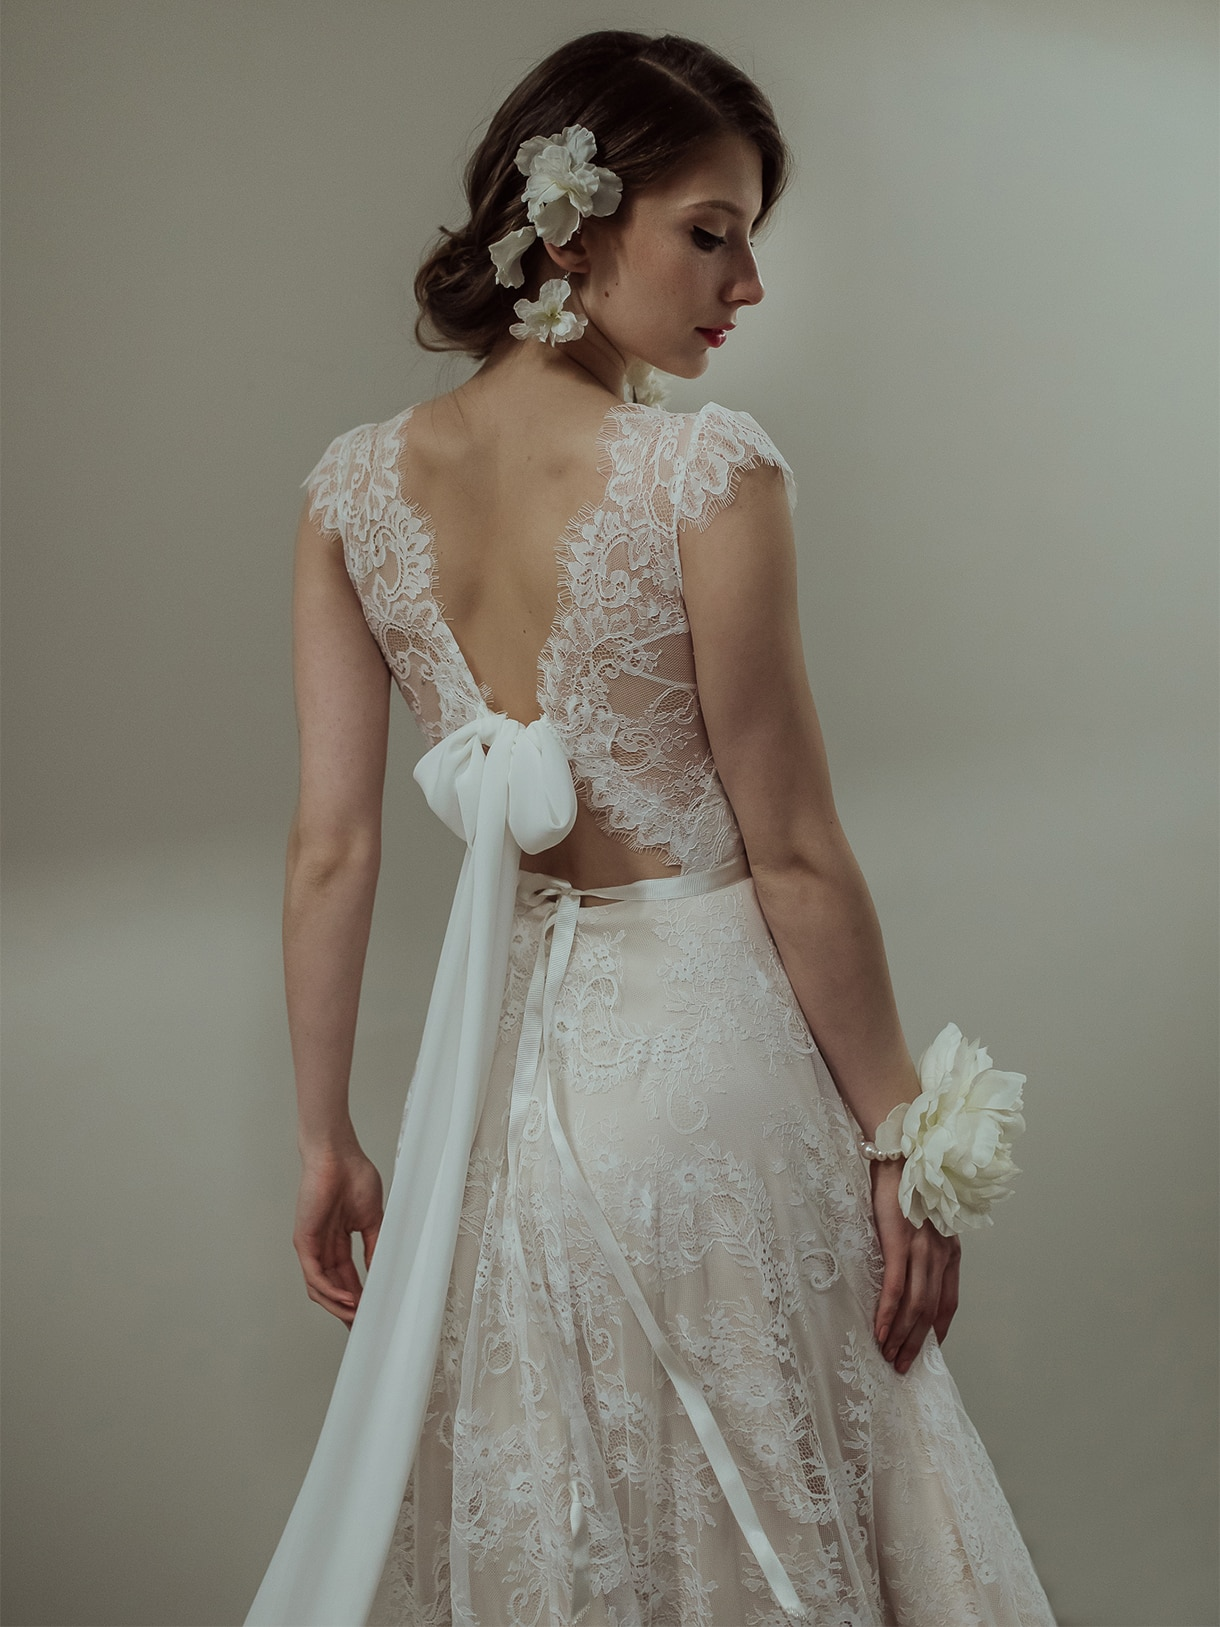 Boho Cap Long Sleeves Lace V-Neck Backless Beach Wedding Dress 2021 Elegant Bridal Gown Plus Size Nude Lining Factory Price